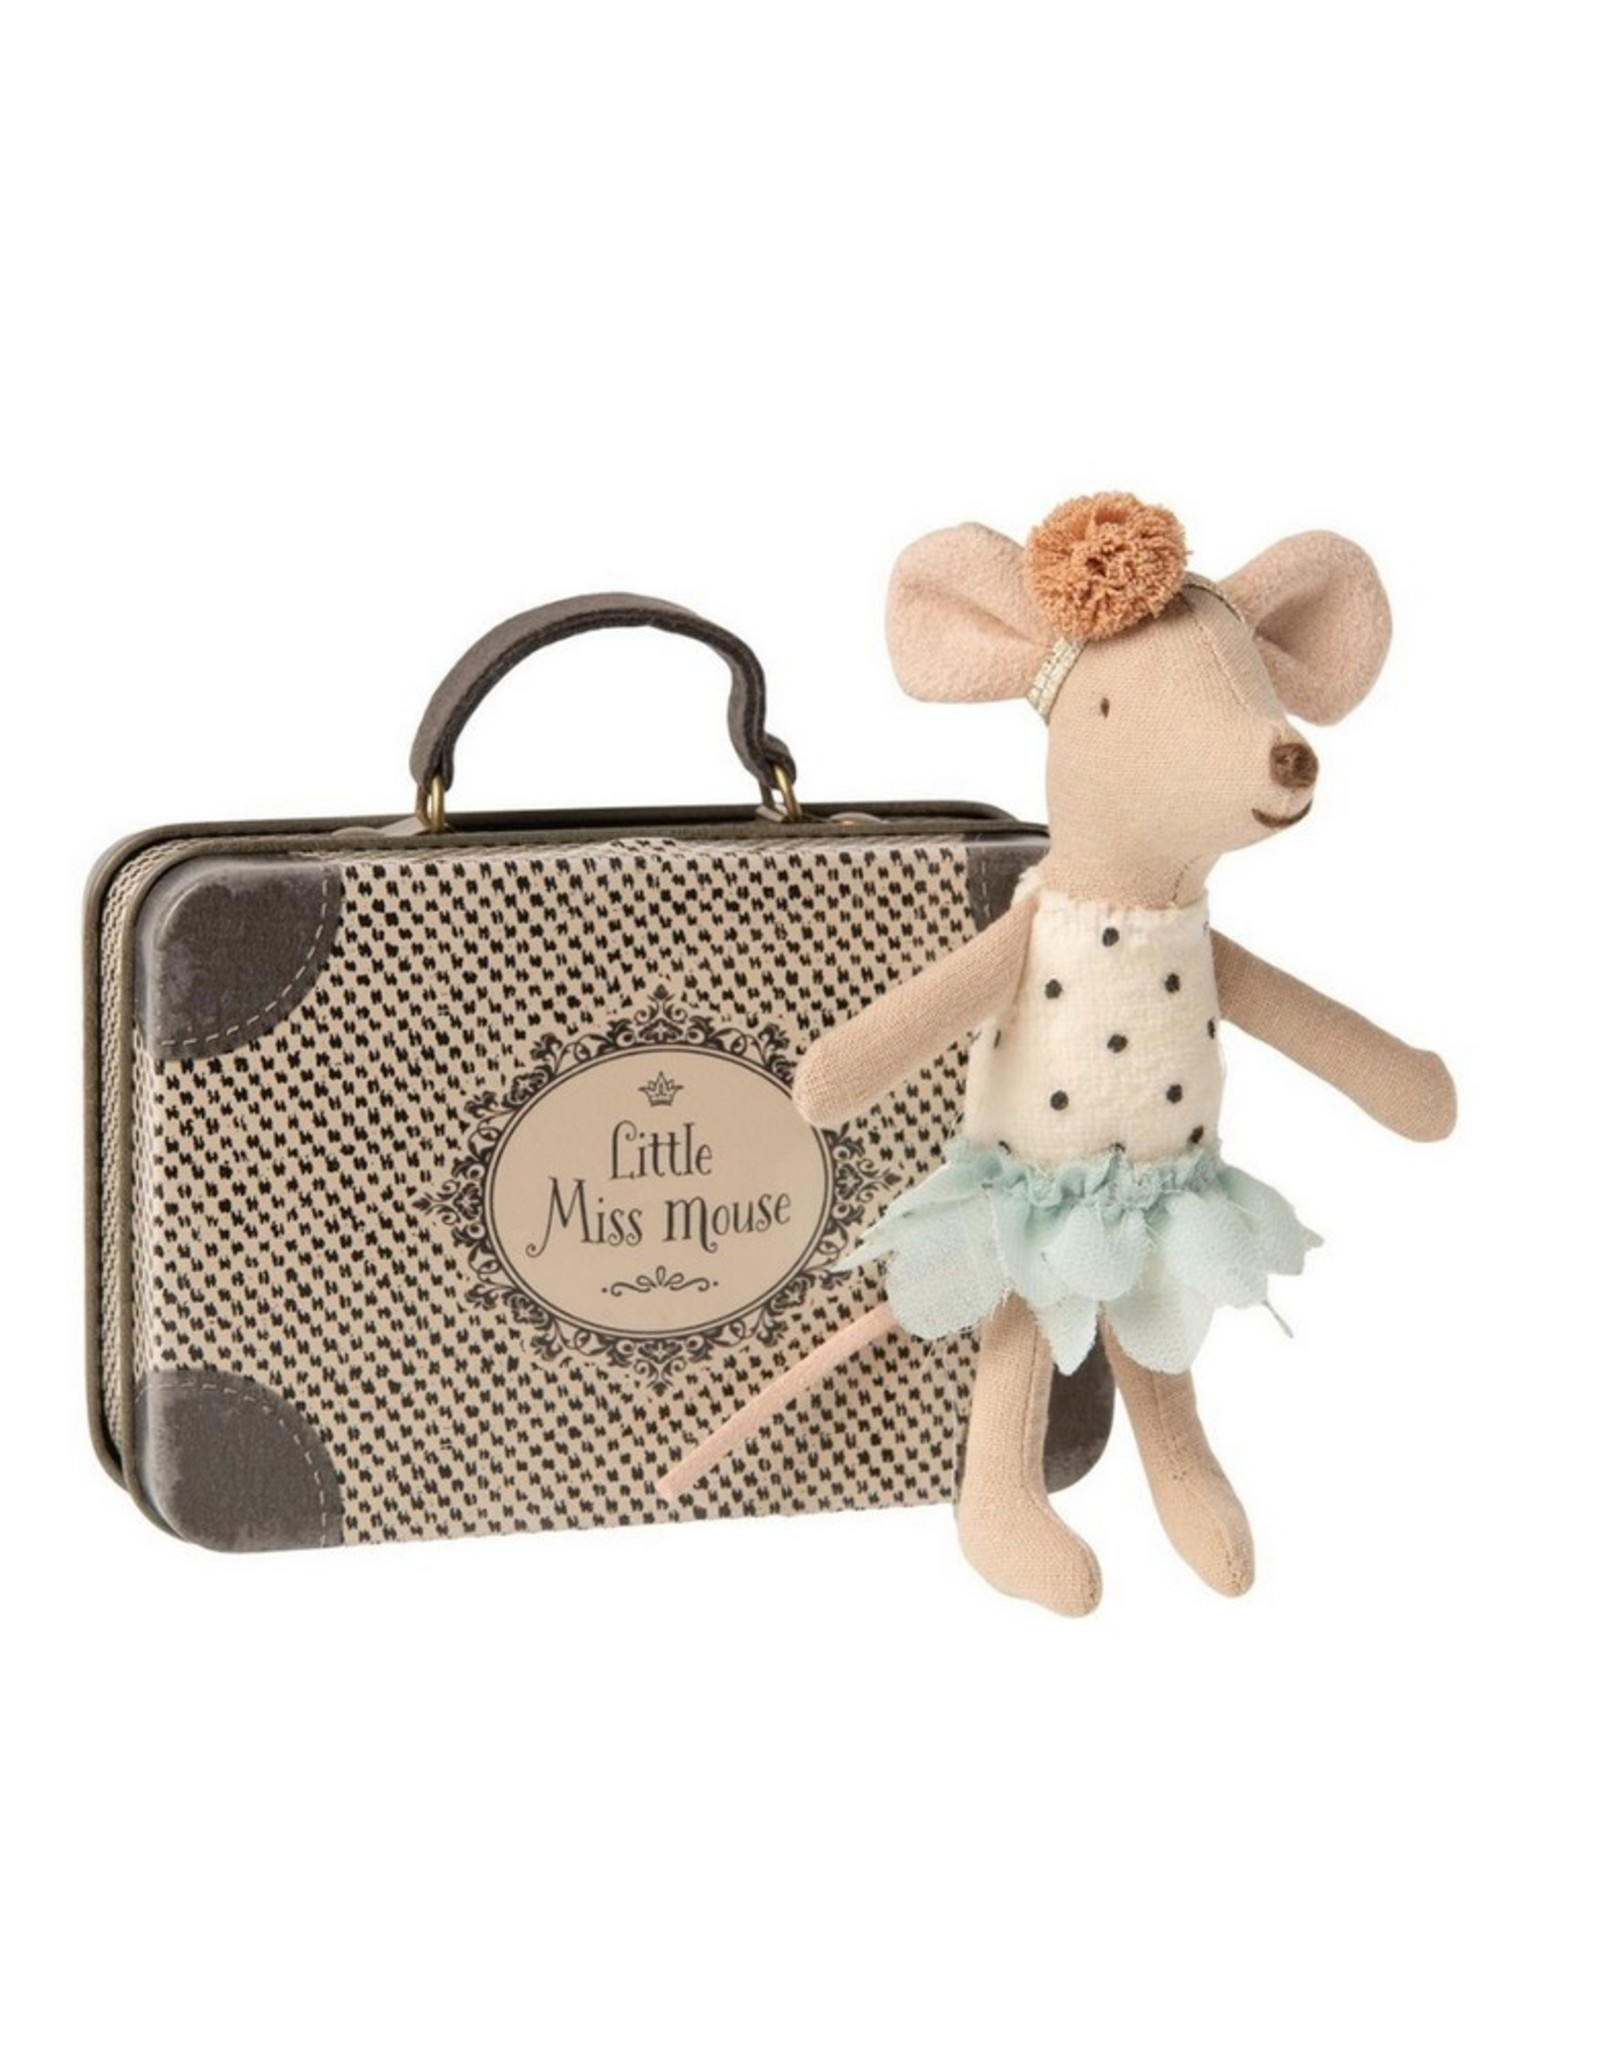 Maileg Knuffel Little Miss Mouse in suitcase